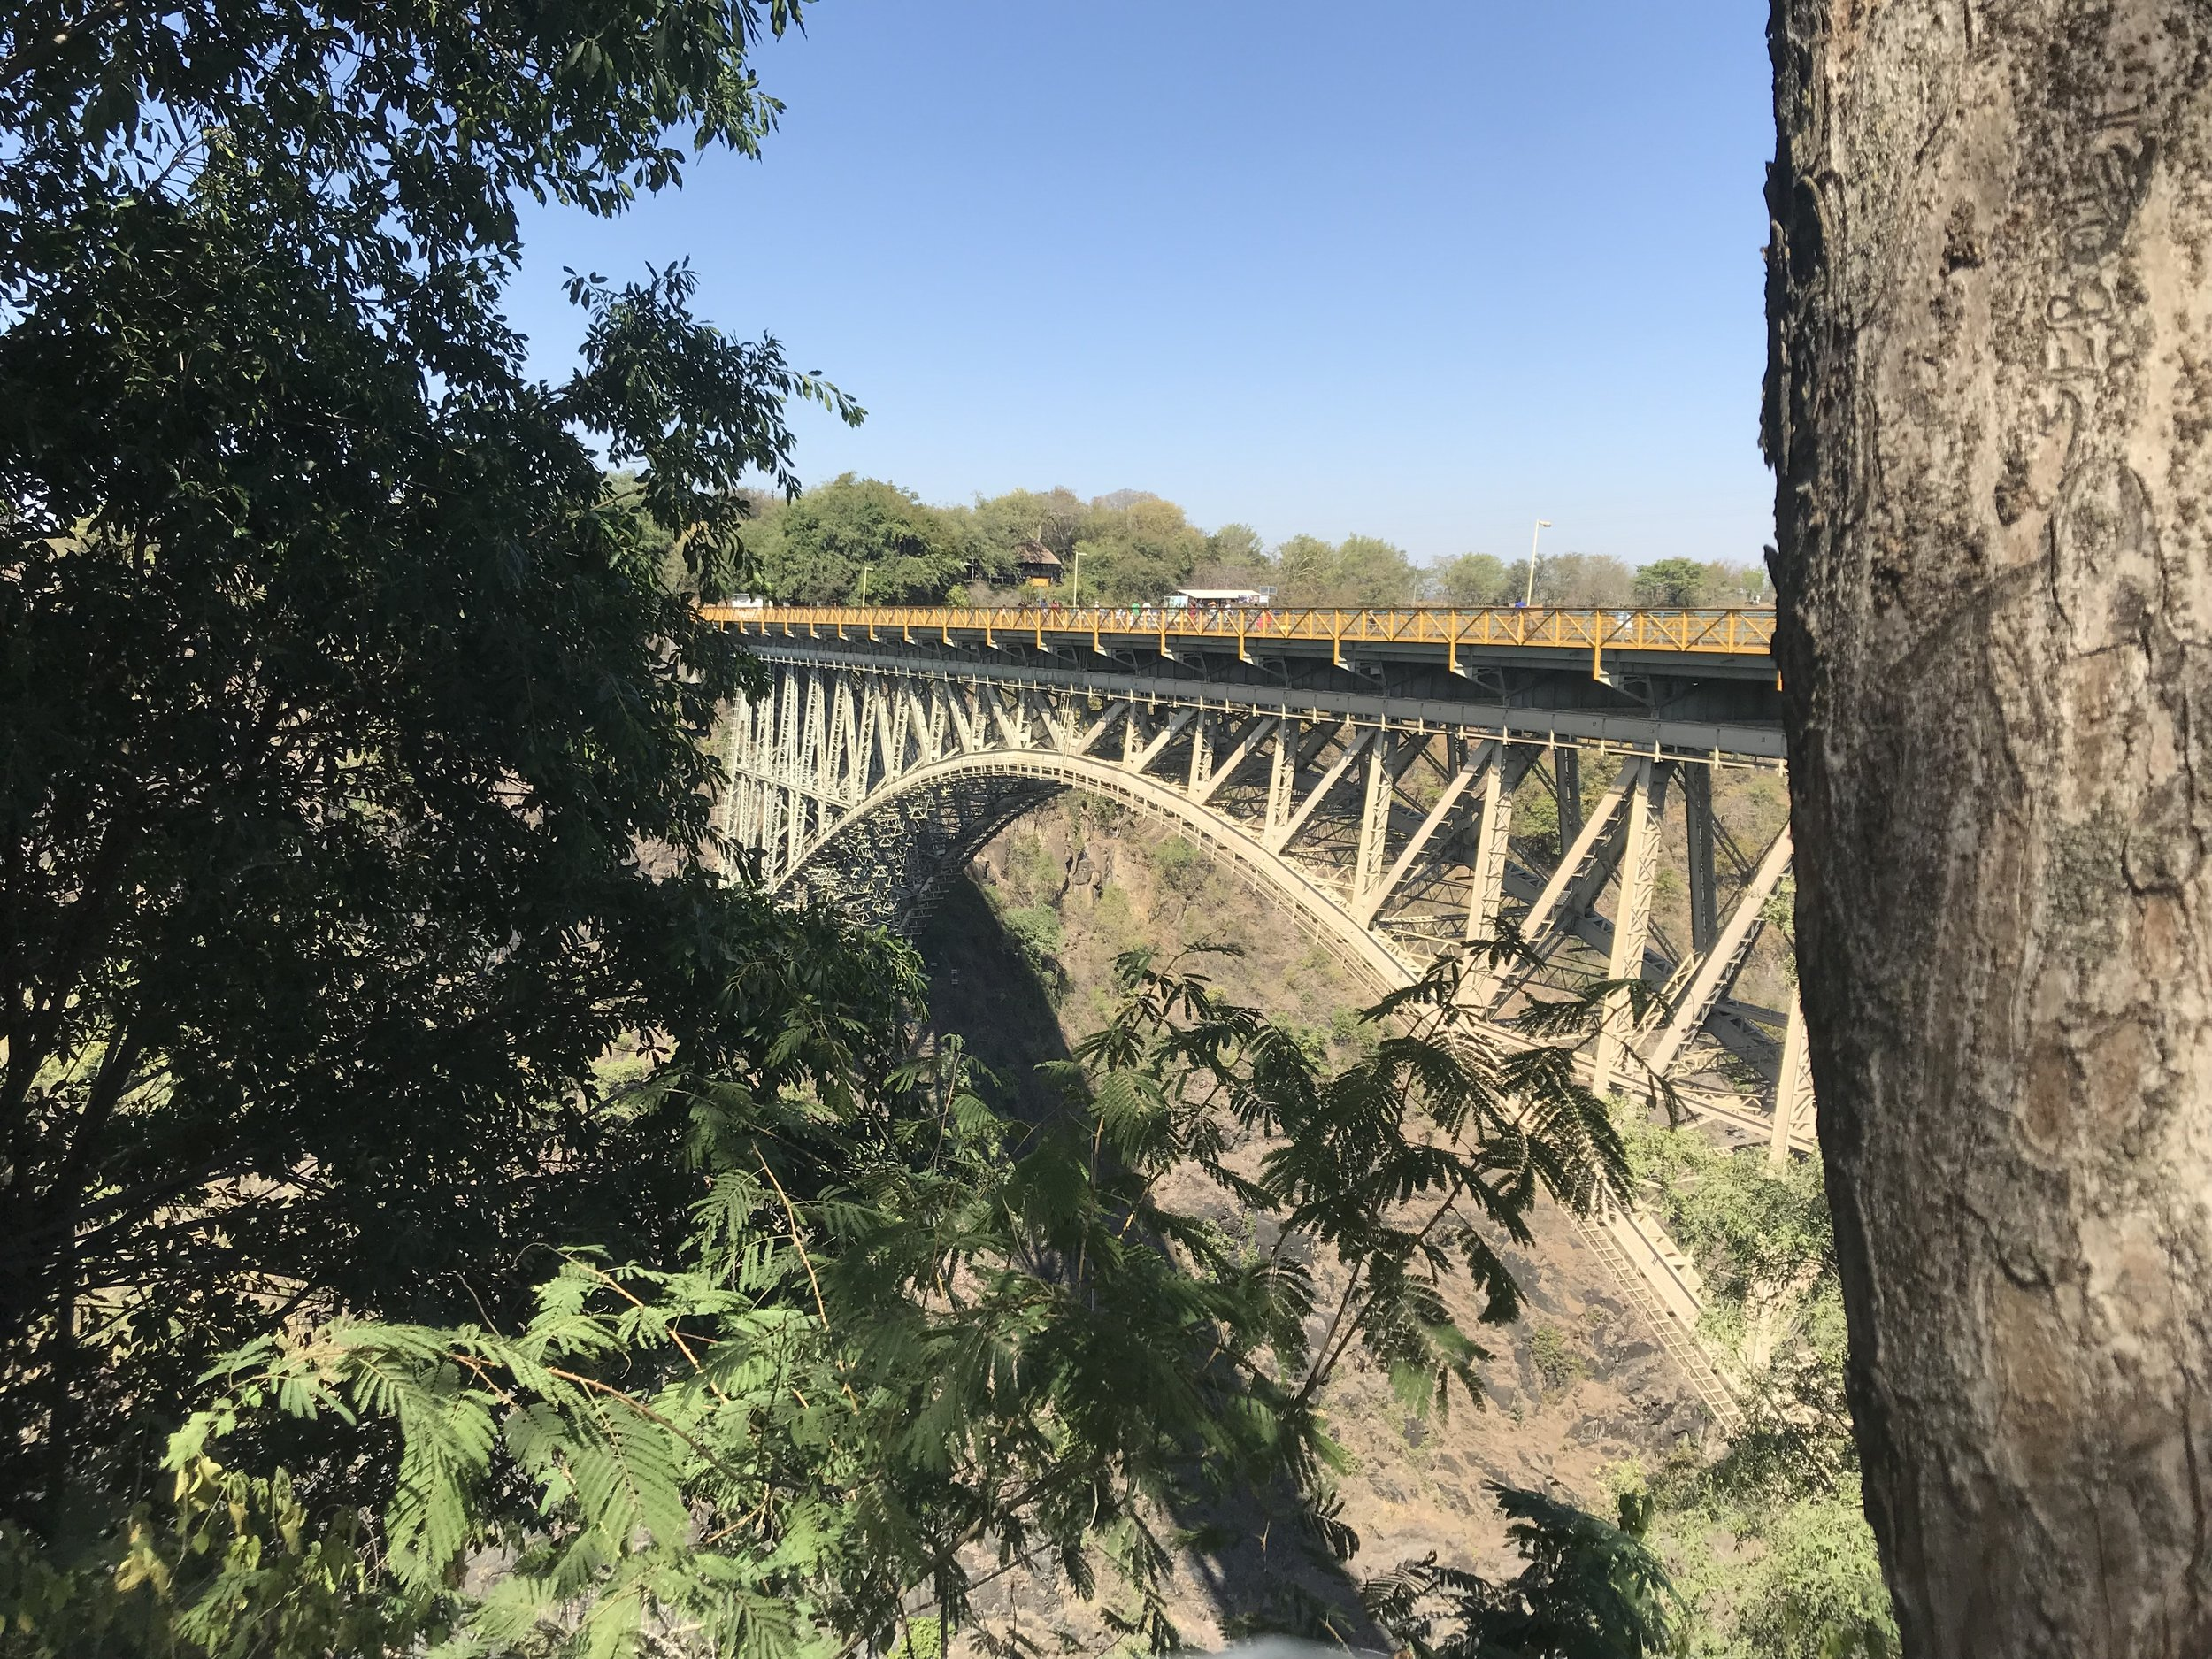 Victoria Falls Bridge links Zimbabwe and Zambia.